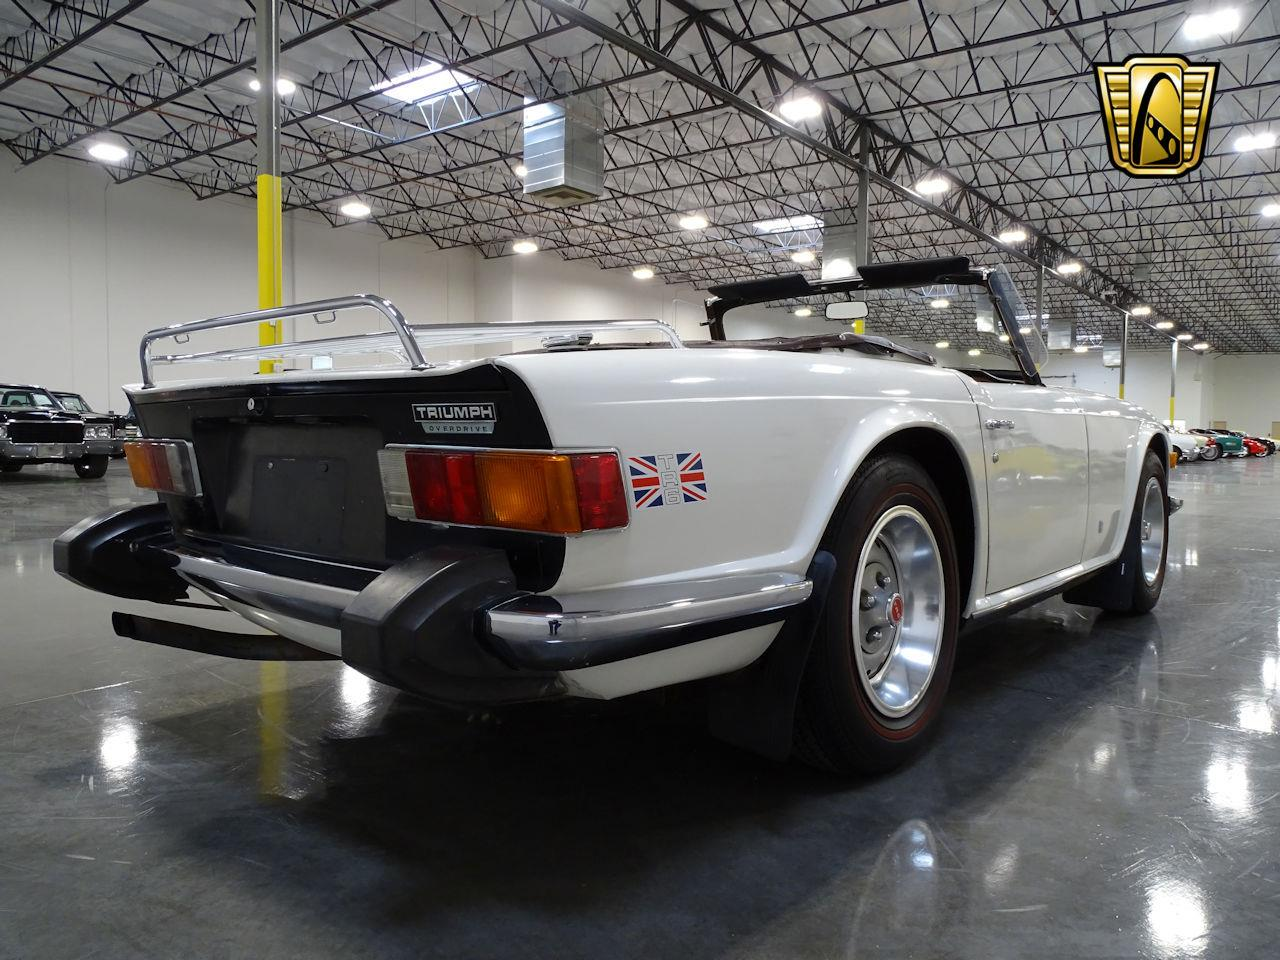 Large Picture of '74 Triumph TR6 located in Arizona - $18,995.00 Offered by Gateway Classic Cars - Scottsdale - MCYM